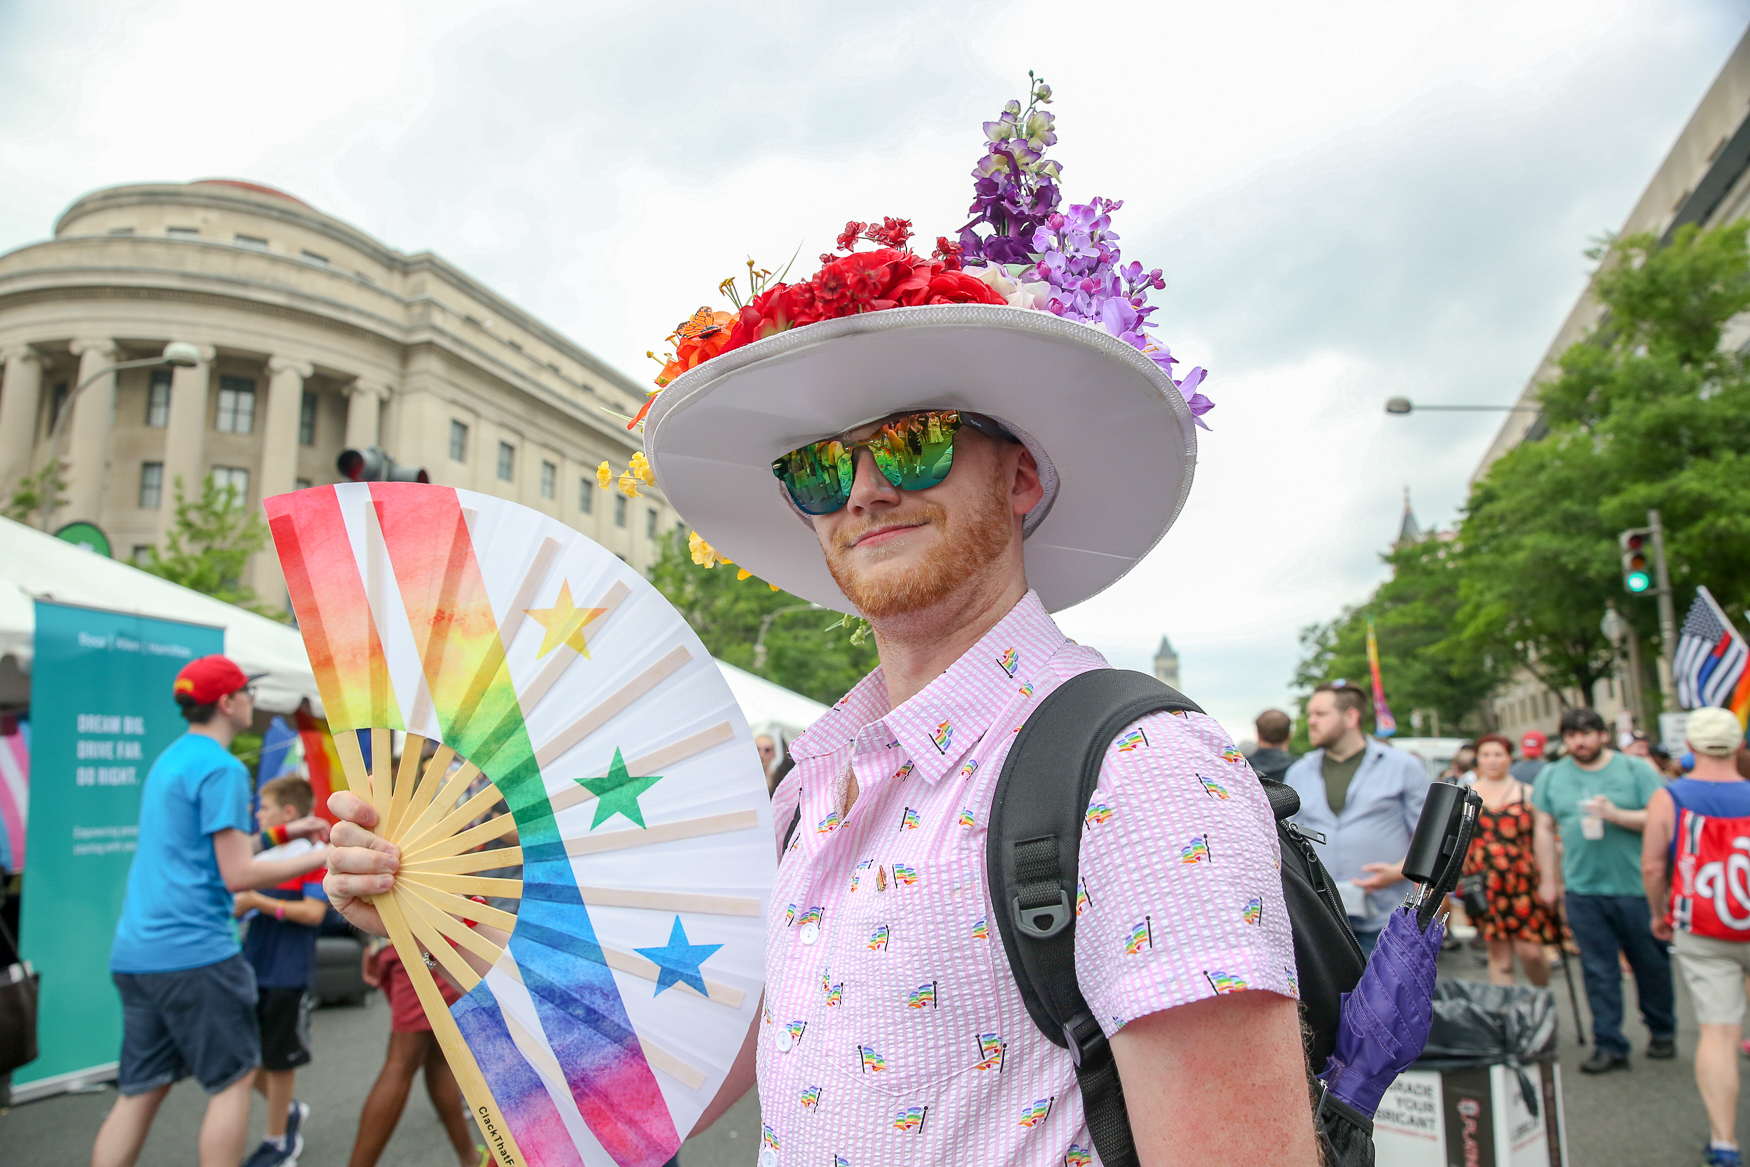 D.C. may not be known for its colorful wardrobes, but that all changes during Pride weekend. Here are the most eye-catching{ }looks we spotted. (Amanda Andrade-Rhoades/DC Refined)